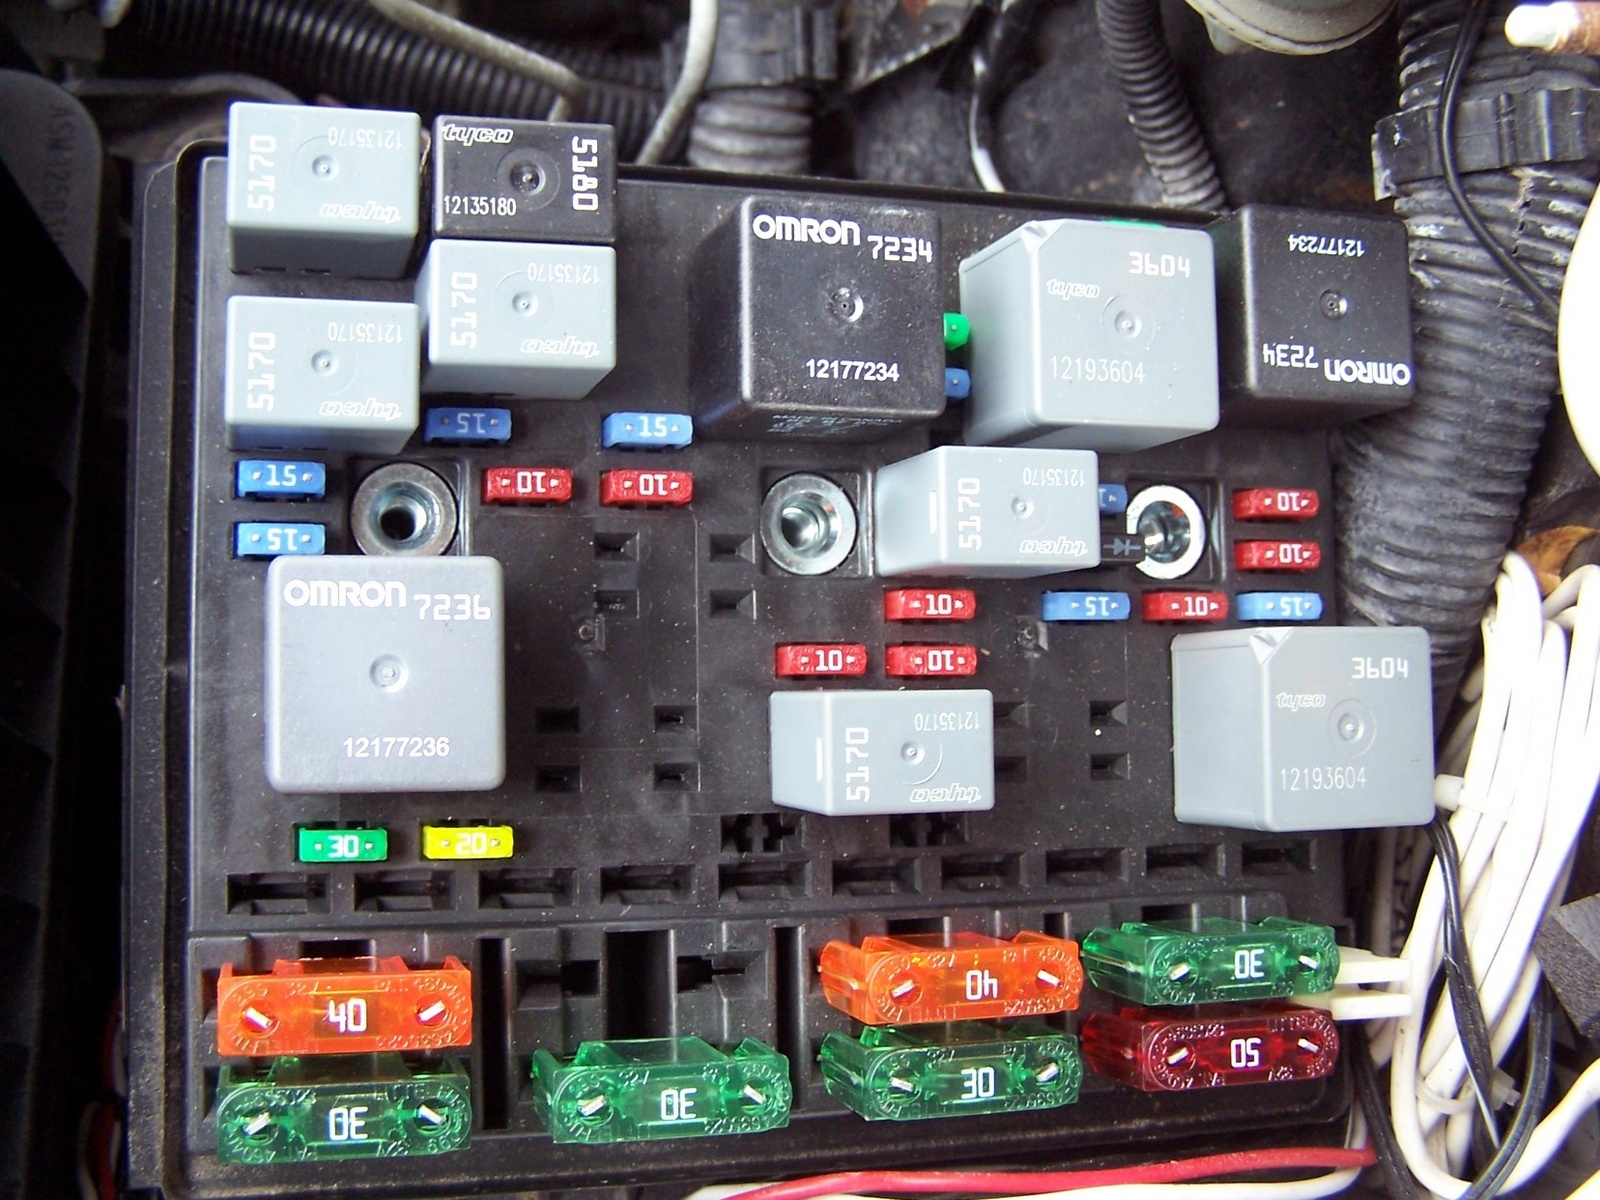 pic 8441705224458495285 chevy hhr fuse box location 06 hhr battery location wiring diagram Car Cigarette Lighter at bakdesigns.co